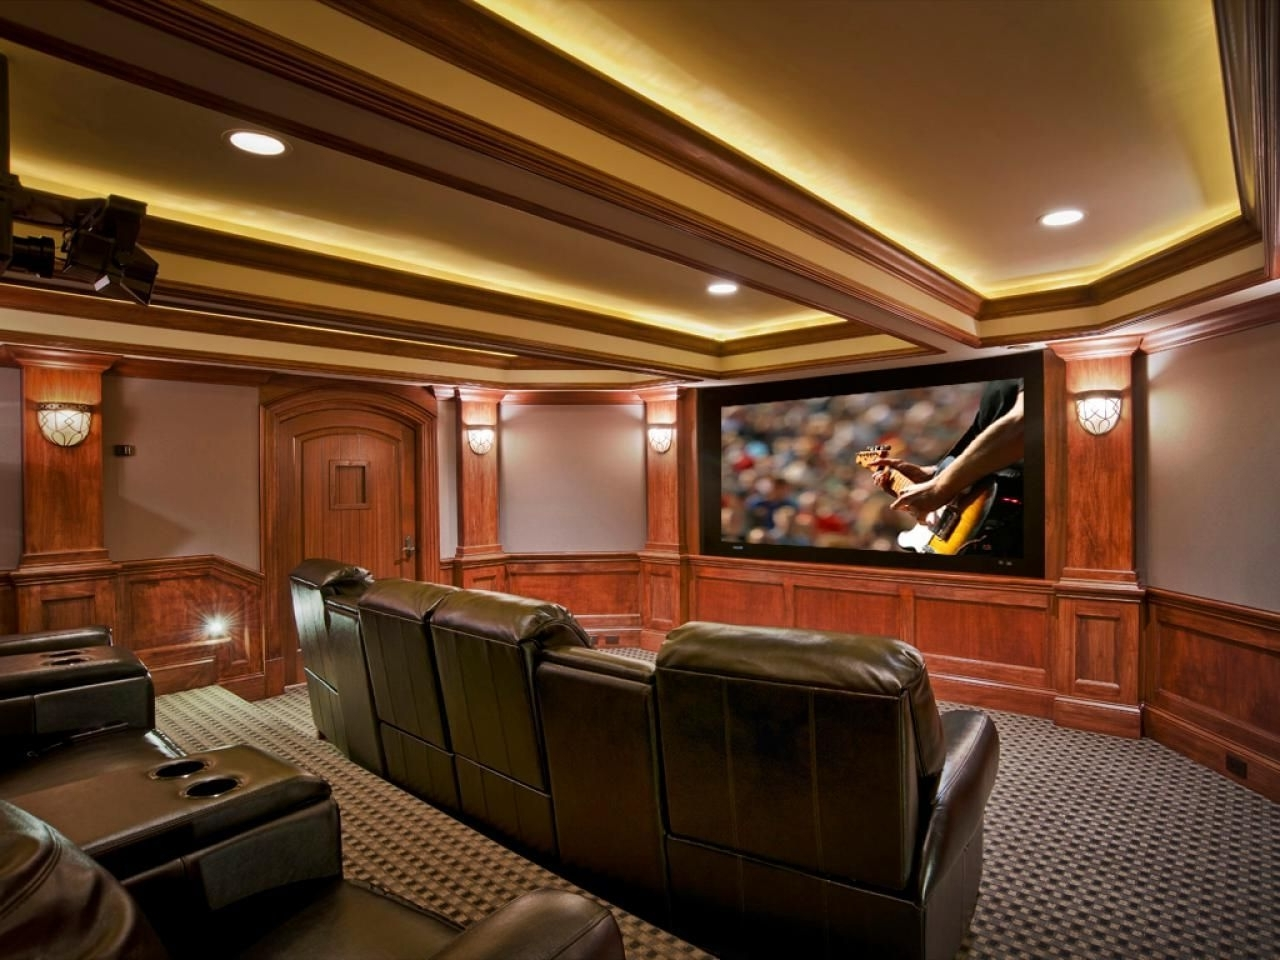 Fashionable Basement Home Theater Ideas, Diy, Small Spaces, Budget, Medium Intended For Media Room Wall Art (View 3 of 15)